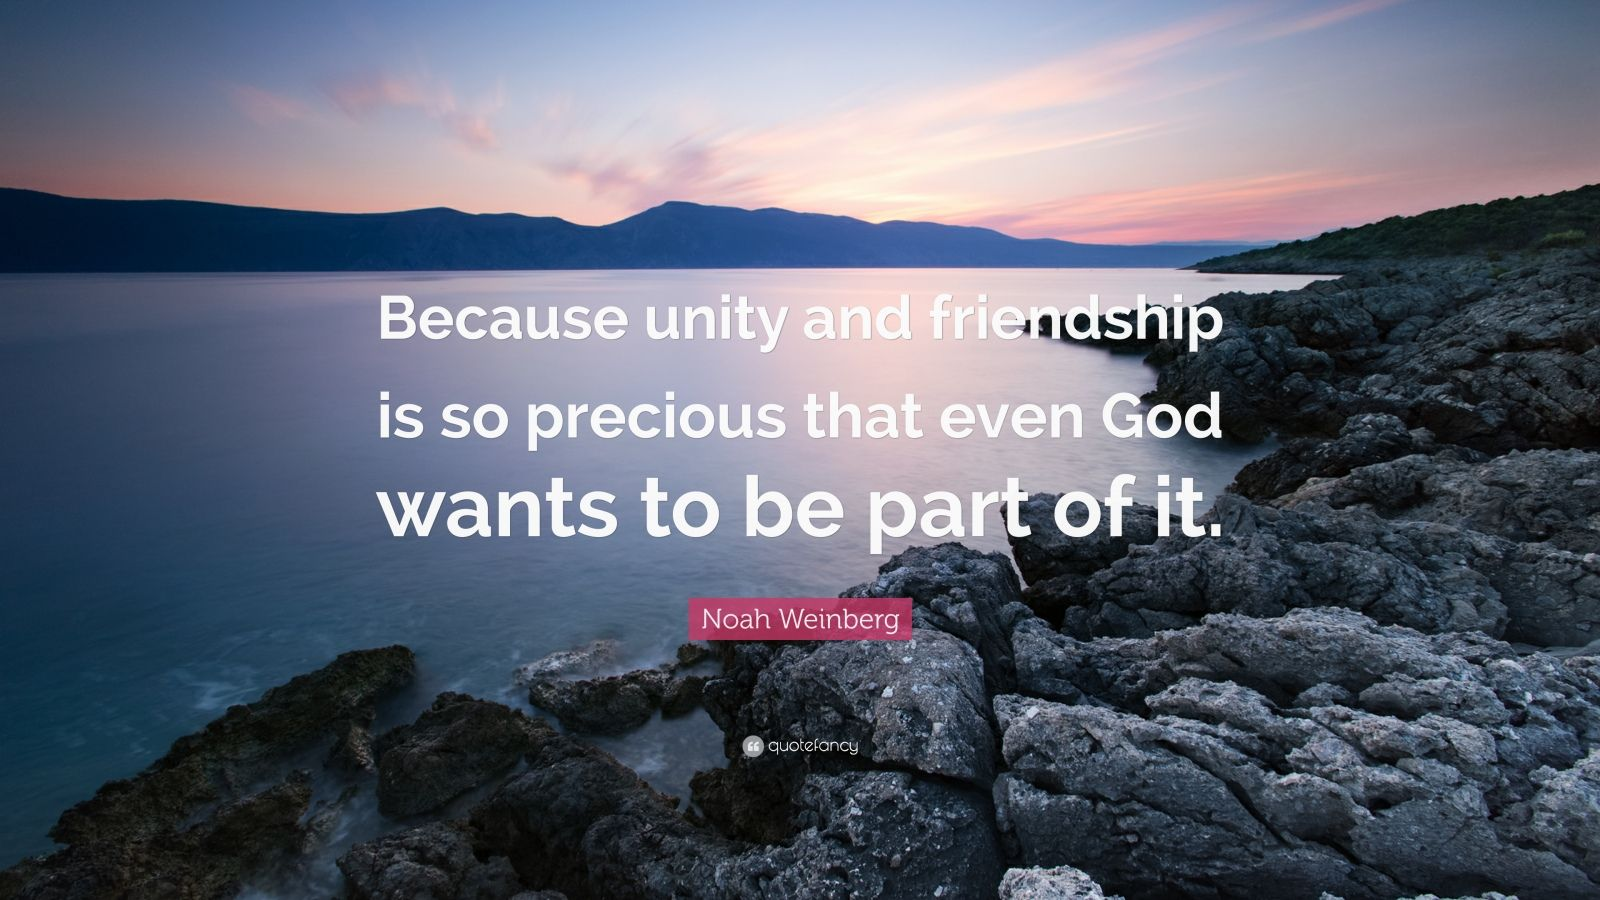 """Noah Weinberg Quote: """"Because unity and friendship is so precious that even God wants to be part of it."""""""